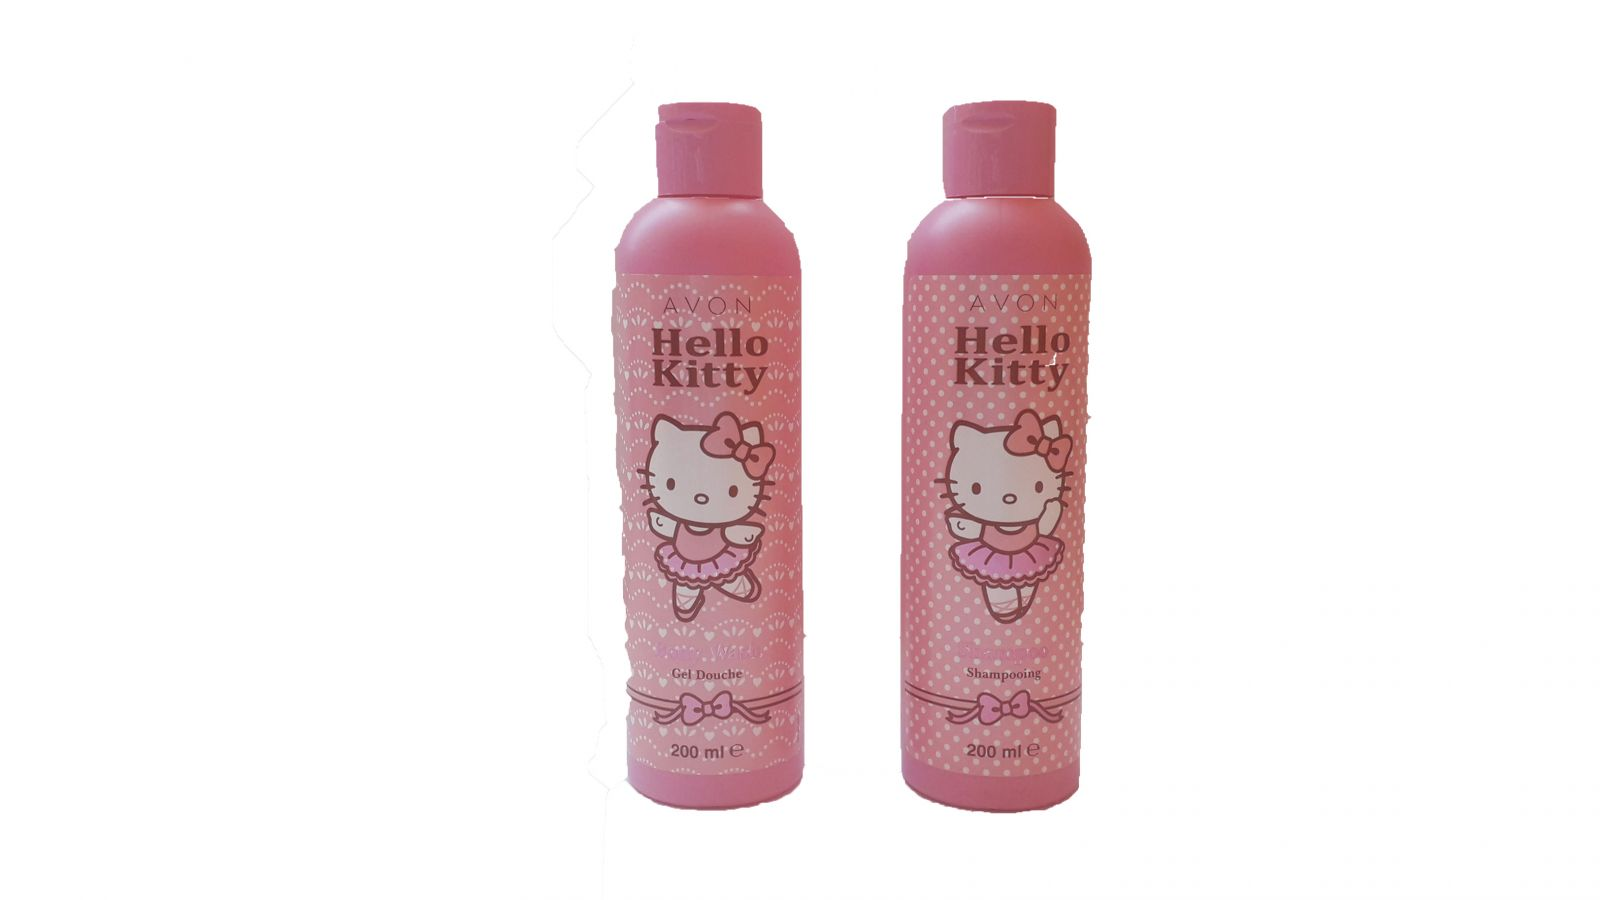 Sada Hello Kitty / 2ks Avon